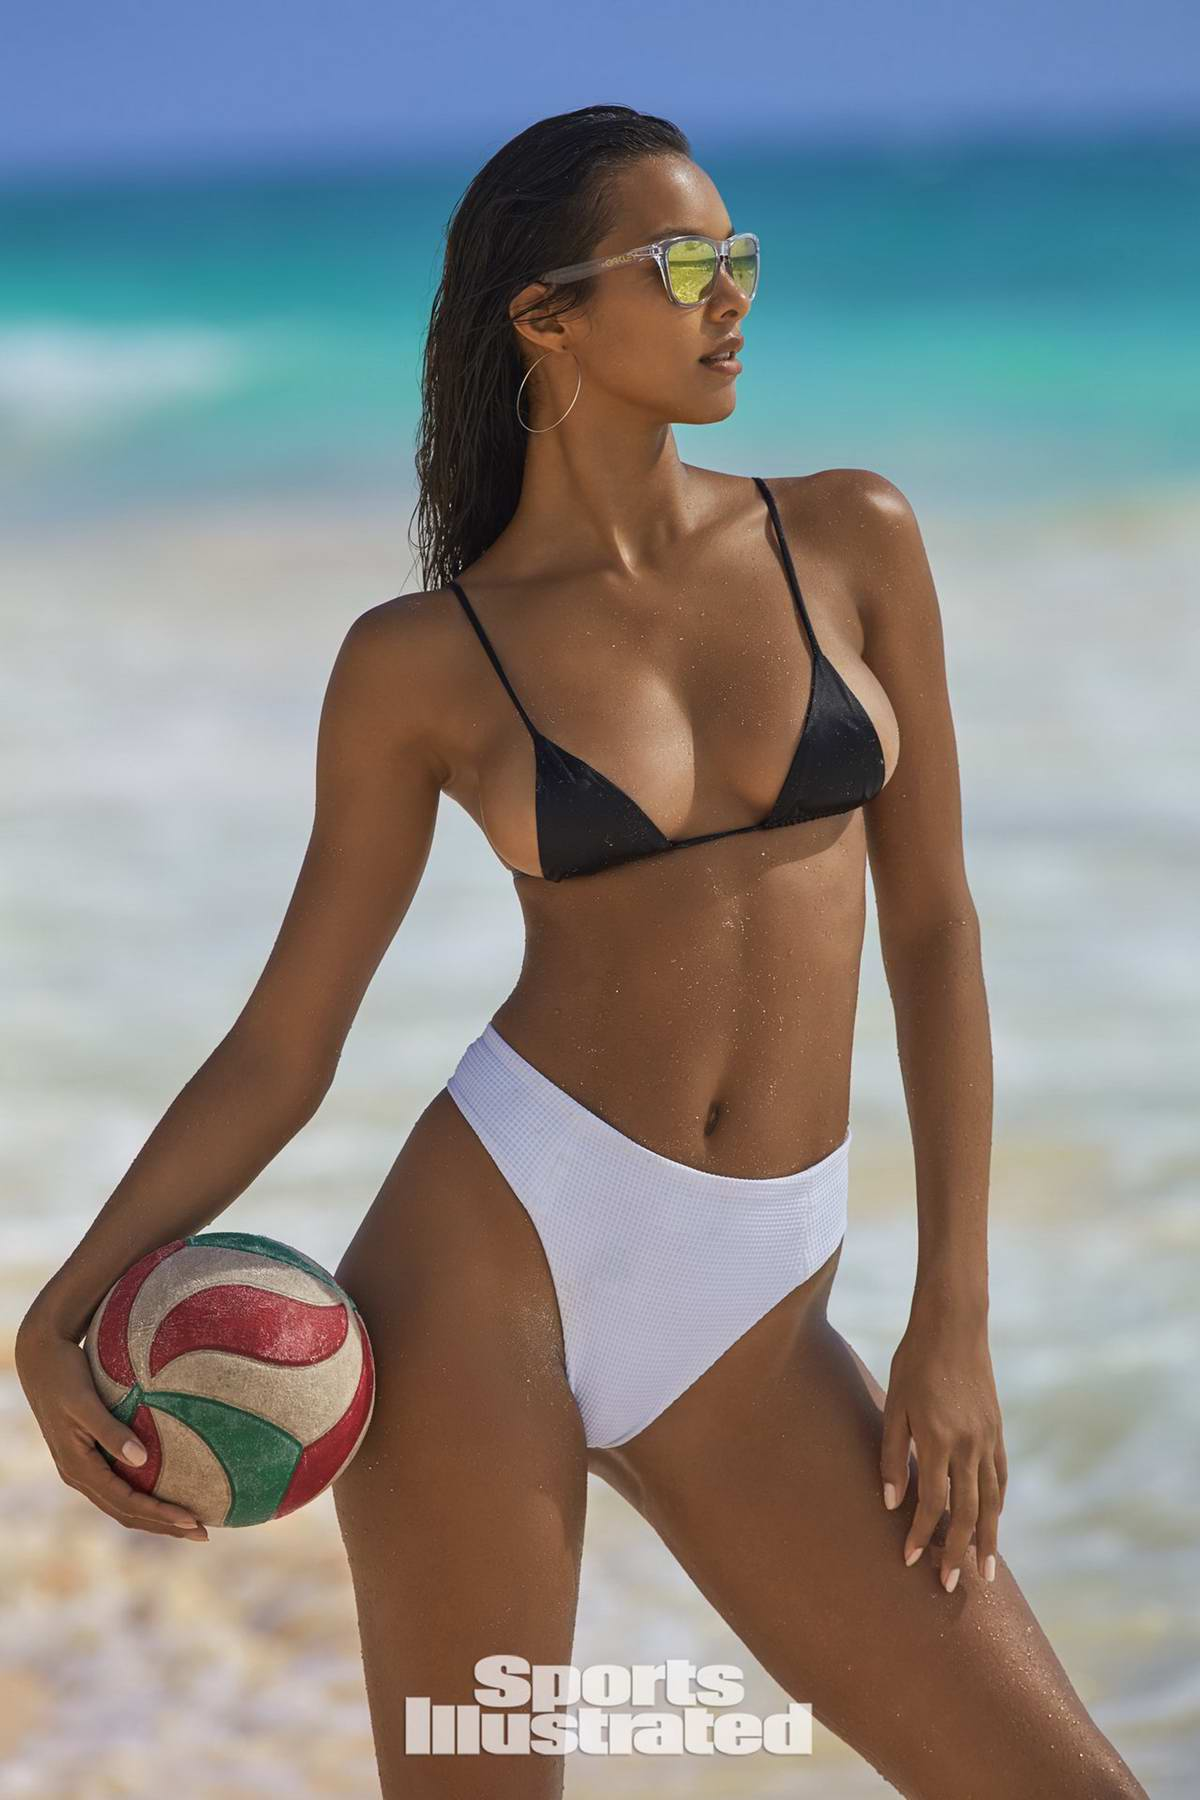 Lais Ribeiro In Sports Illustrated Swimsuit Issue 2018 25